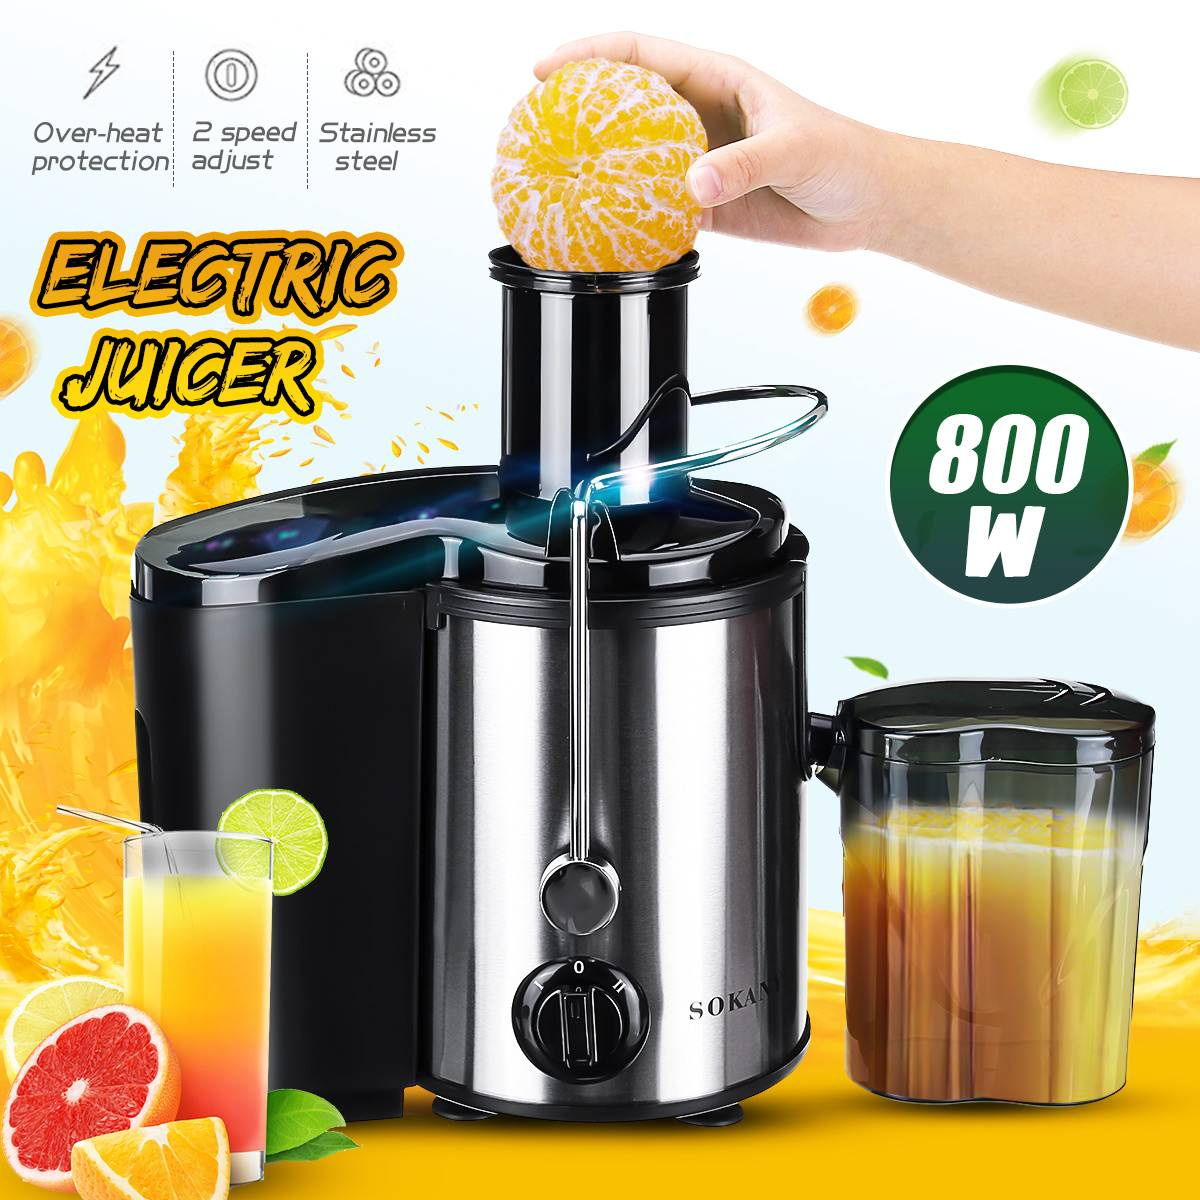 800W 220V Electric Juicer Stainless Steel Juicers Whole Fruit Vegetable Food-Blender Mixer Extractor Machine 2 Speed Adjustment